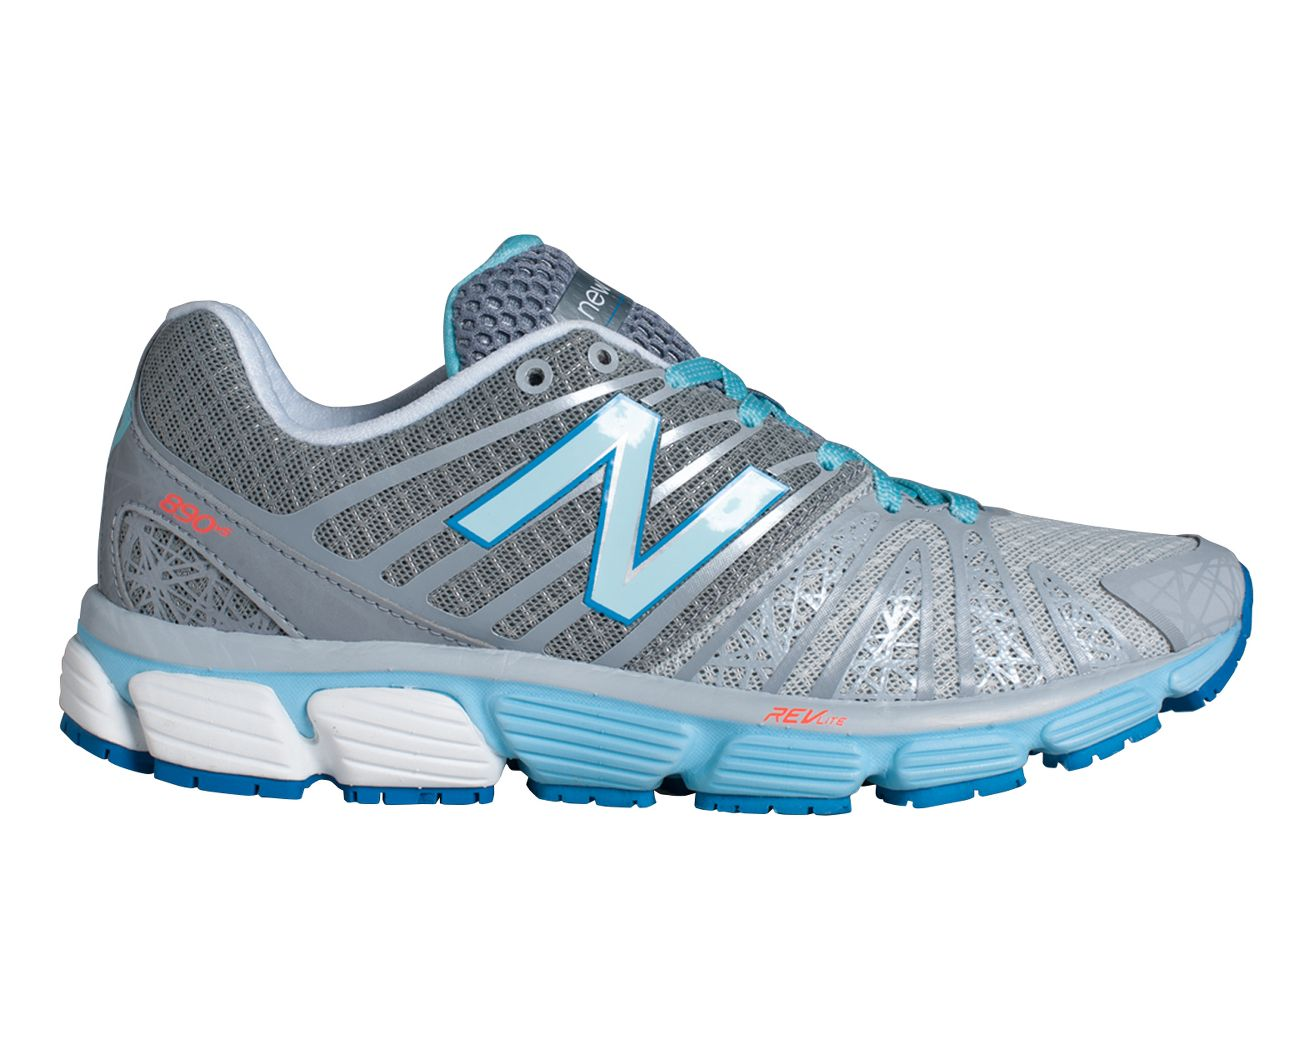 New Balance 890 V5 - Women's - Running - Shoes - Silver/Blue